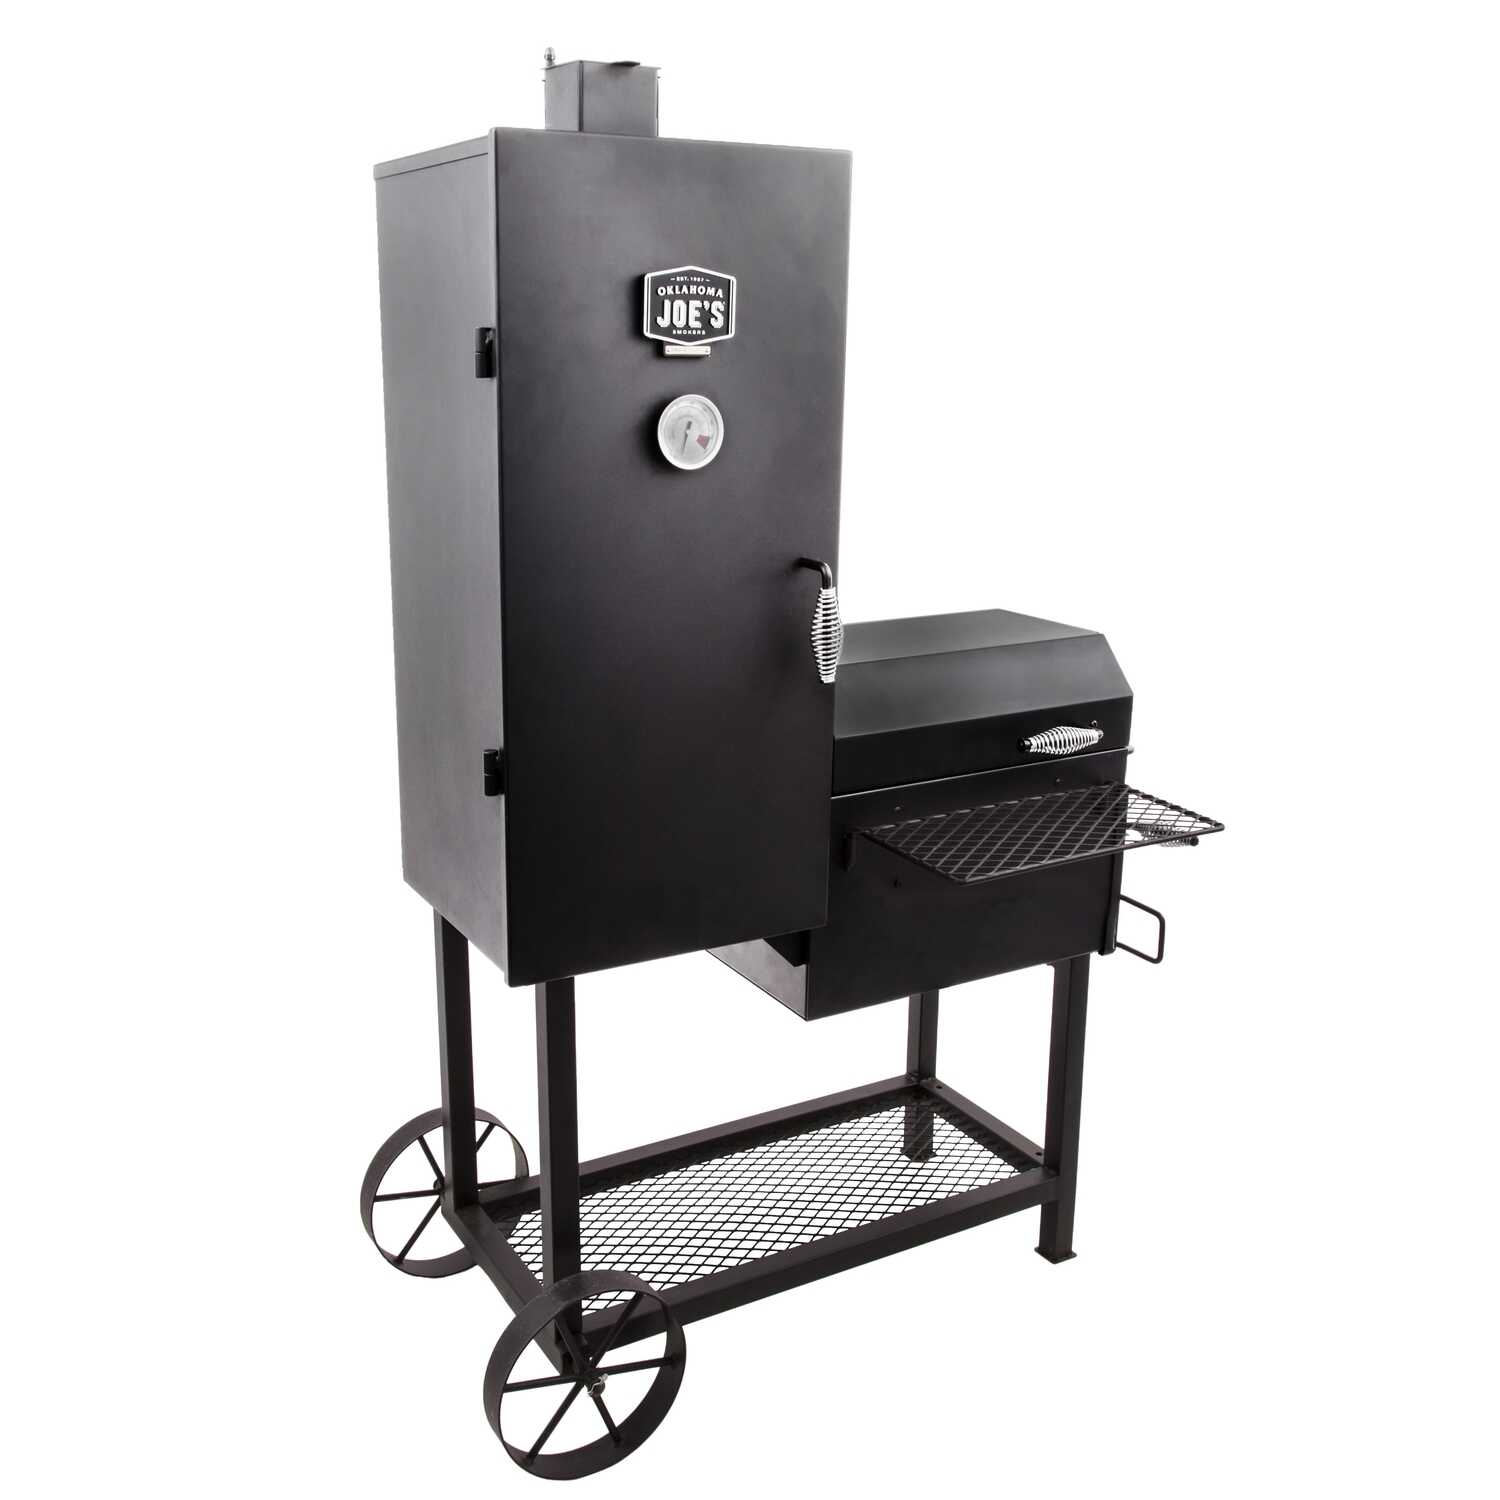 Oklahoma Joes  Oklahoma Joe's Bandera  39.3 in. W Smoker Cooker  Black  Charcoal